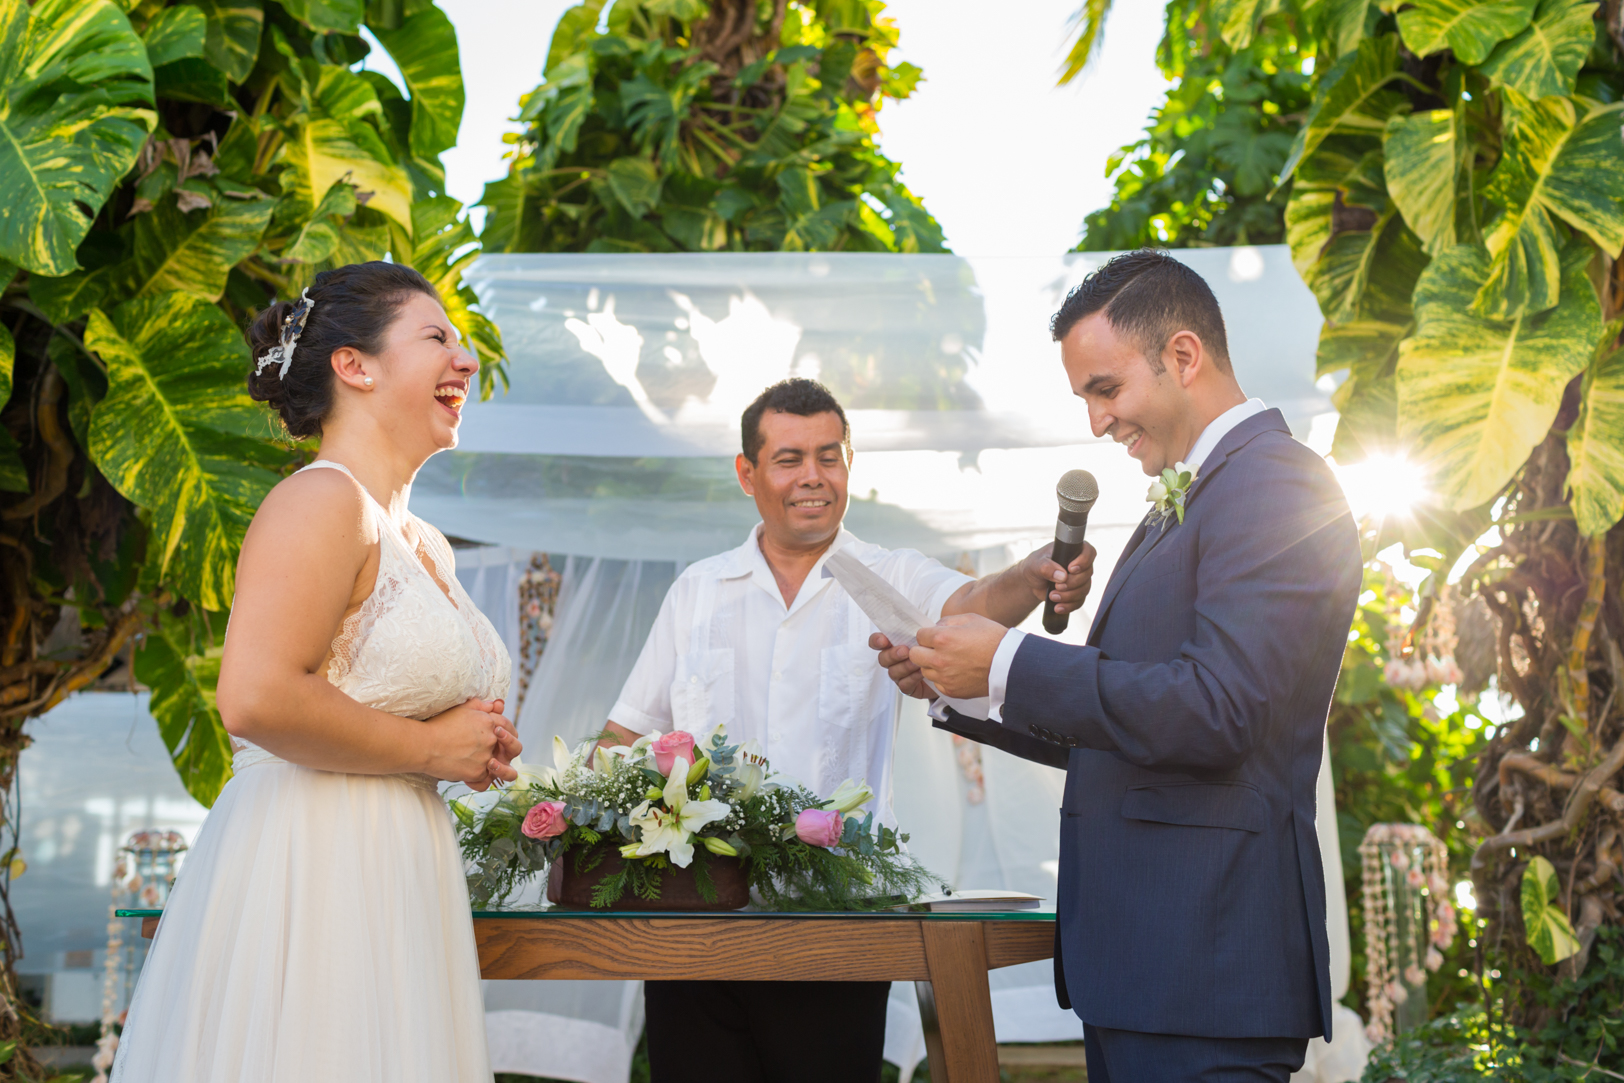 Reading vows to each other at Sunscape Dorado Pacifico Ixtapa destination wedding